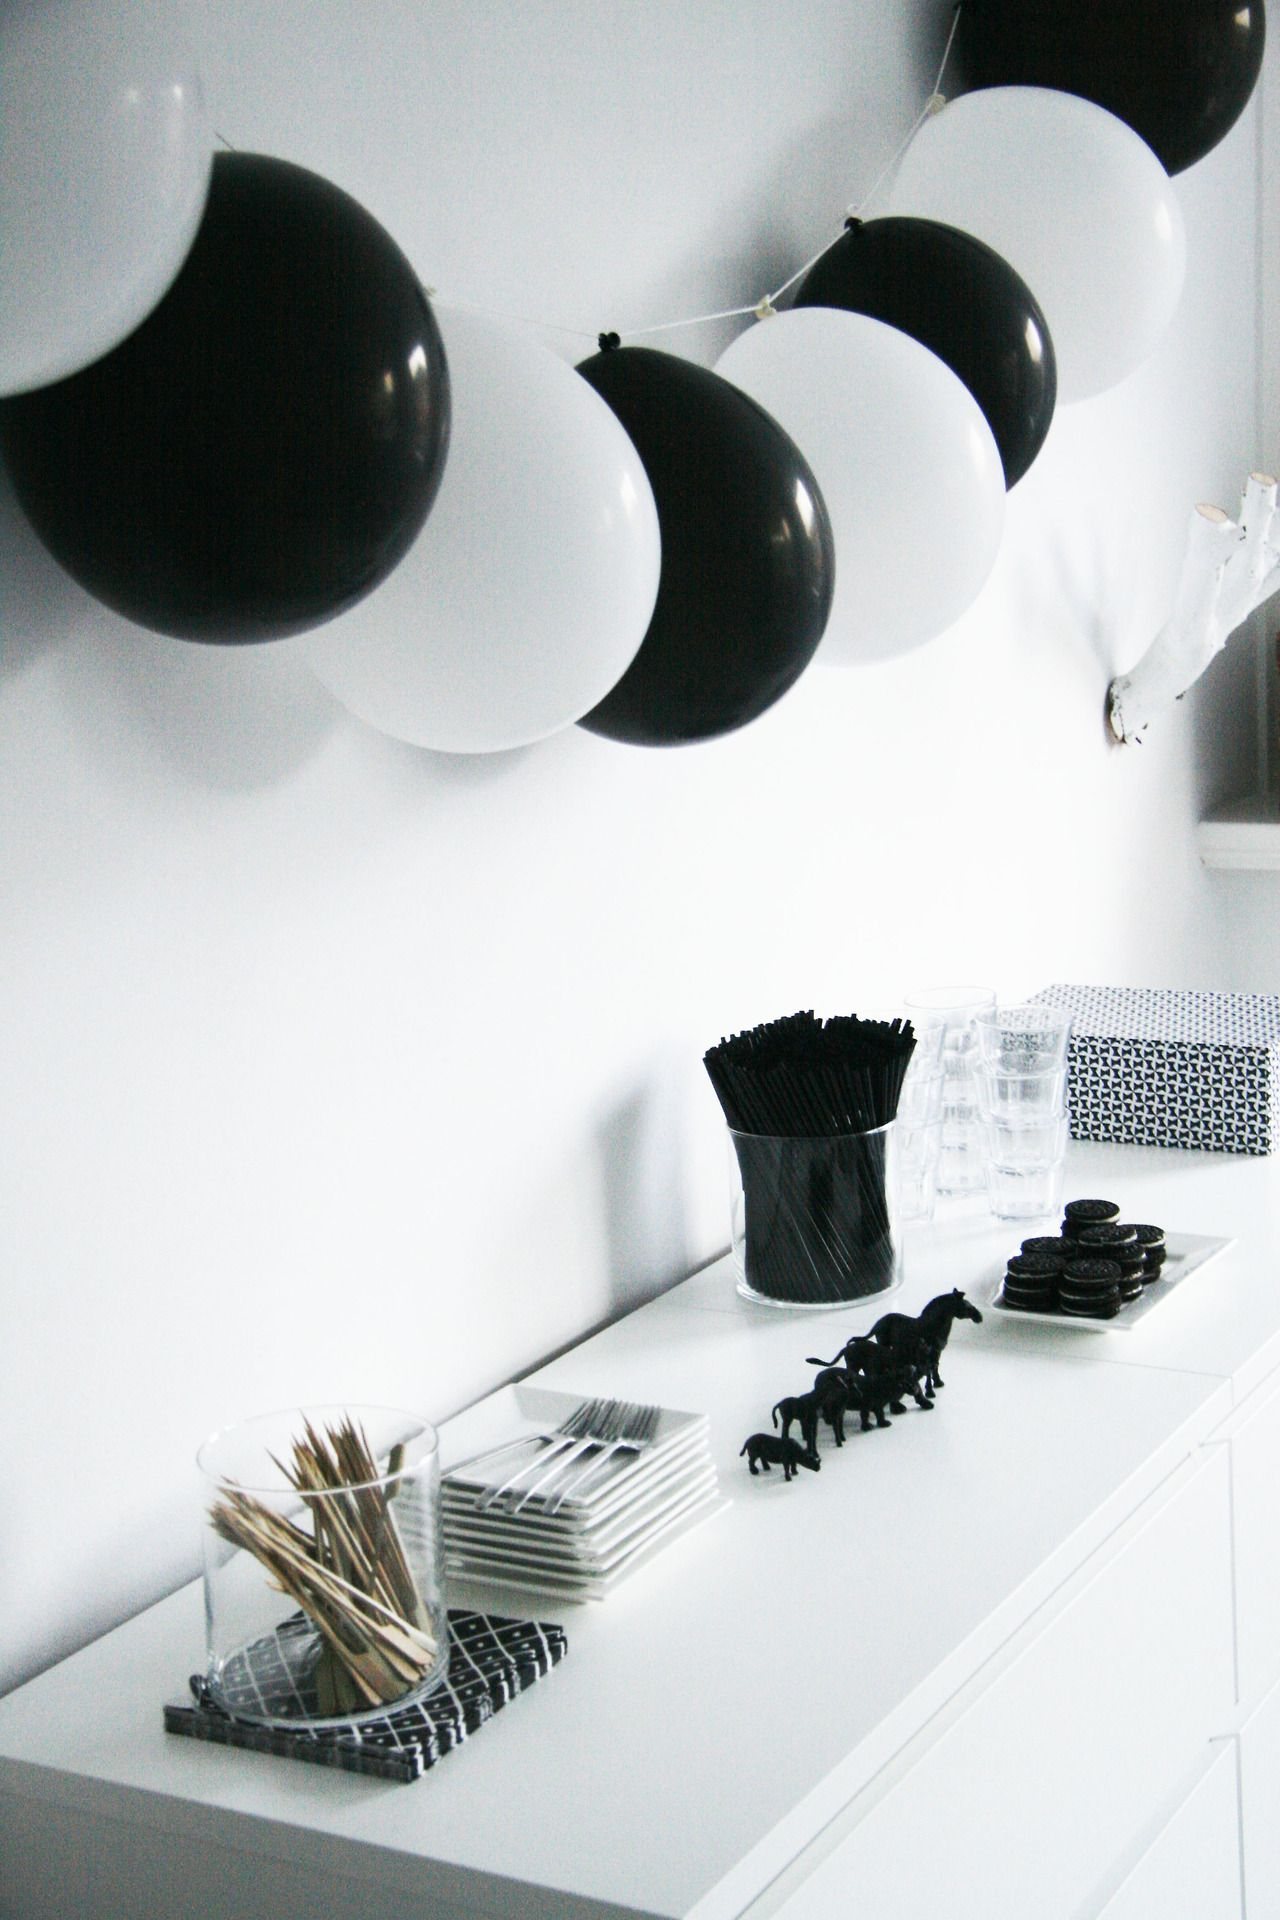 More fun ways with black white balloons for our biodegradable